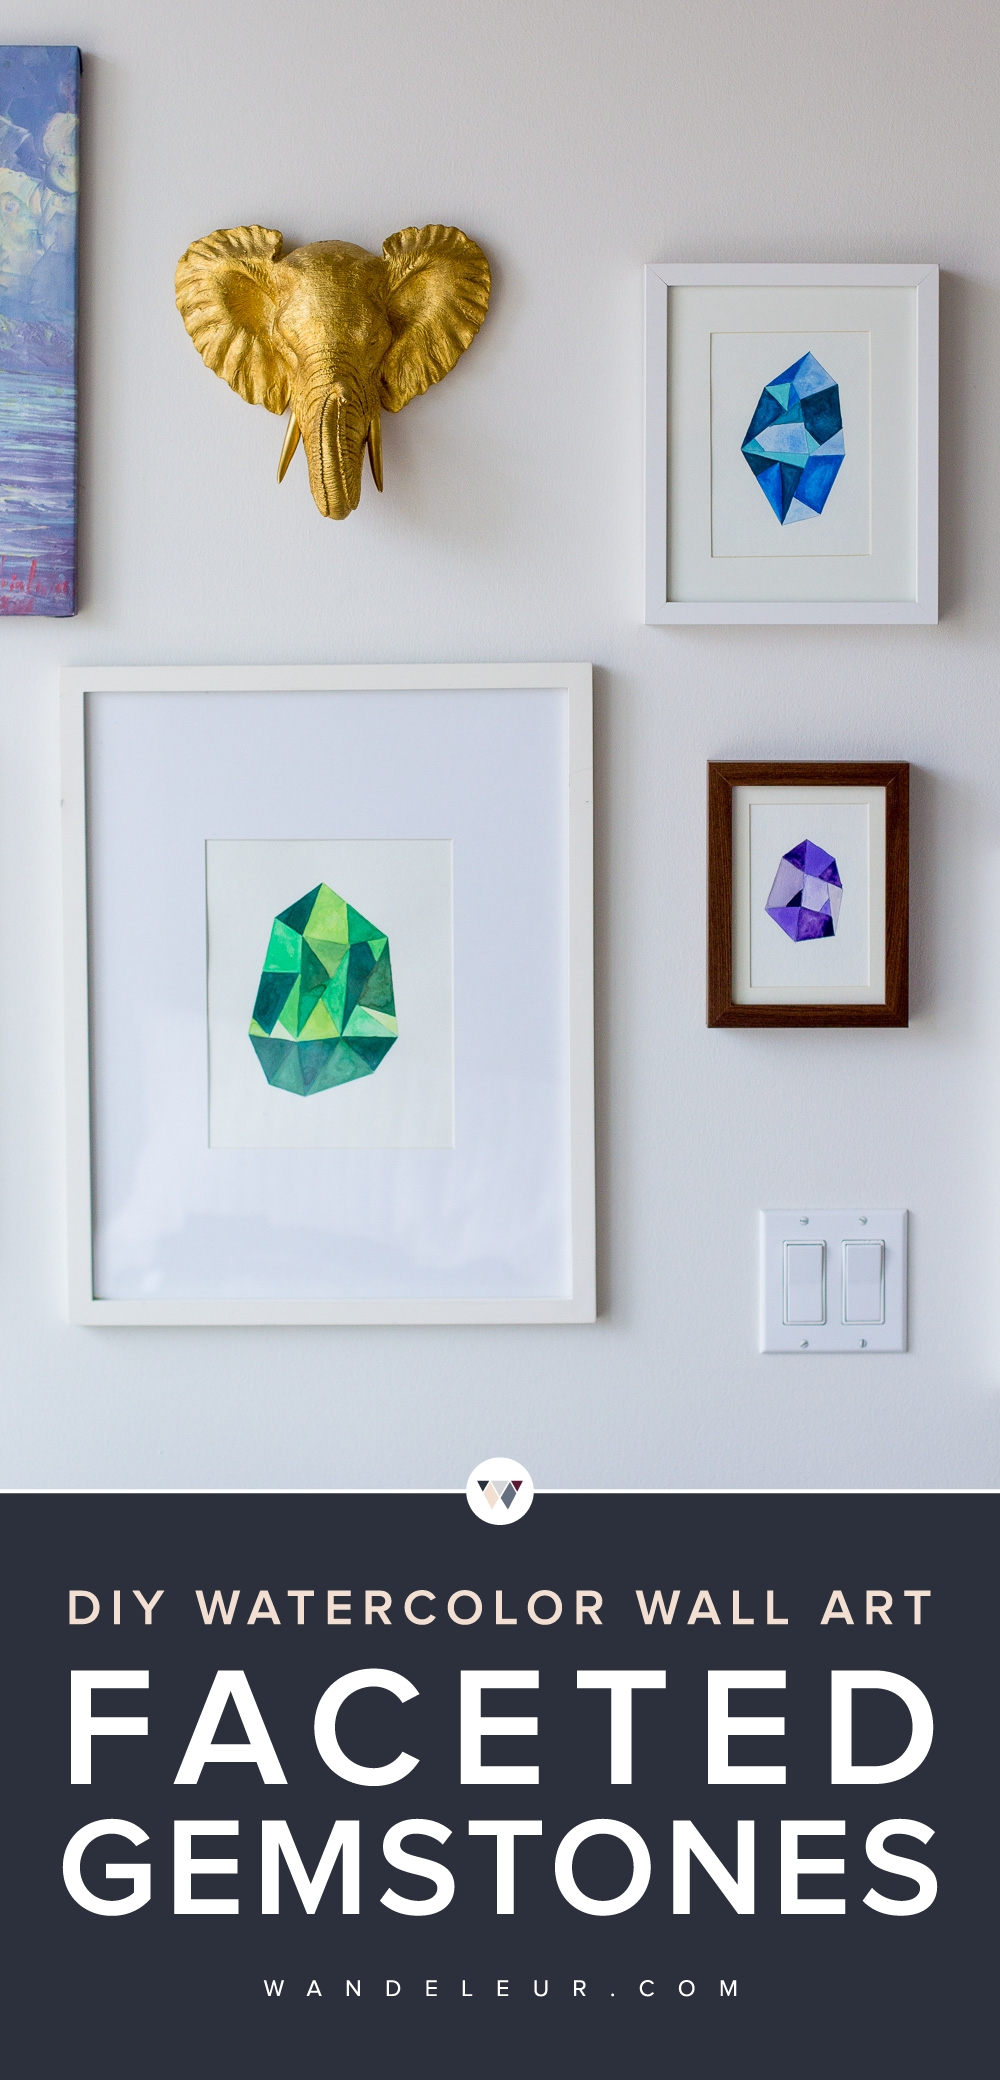 Diy Faceted Gemstone Wall Art — Wandeleur With Regard To Gemstone Wall Art (Image 9 of 20)